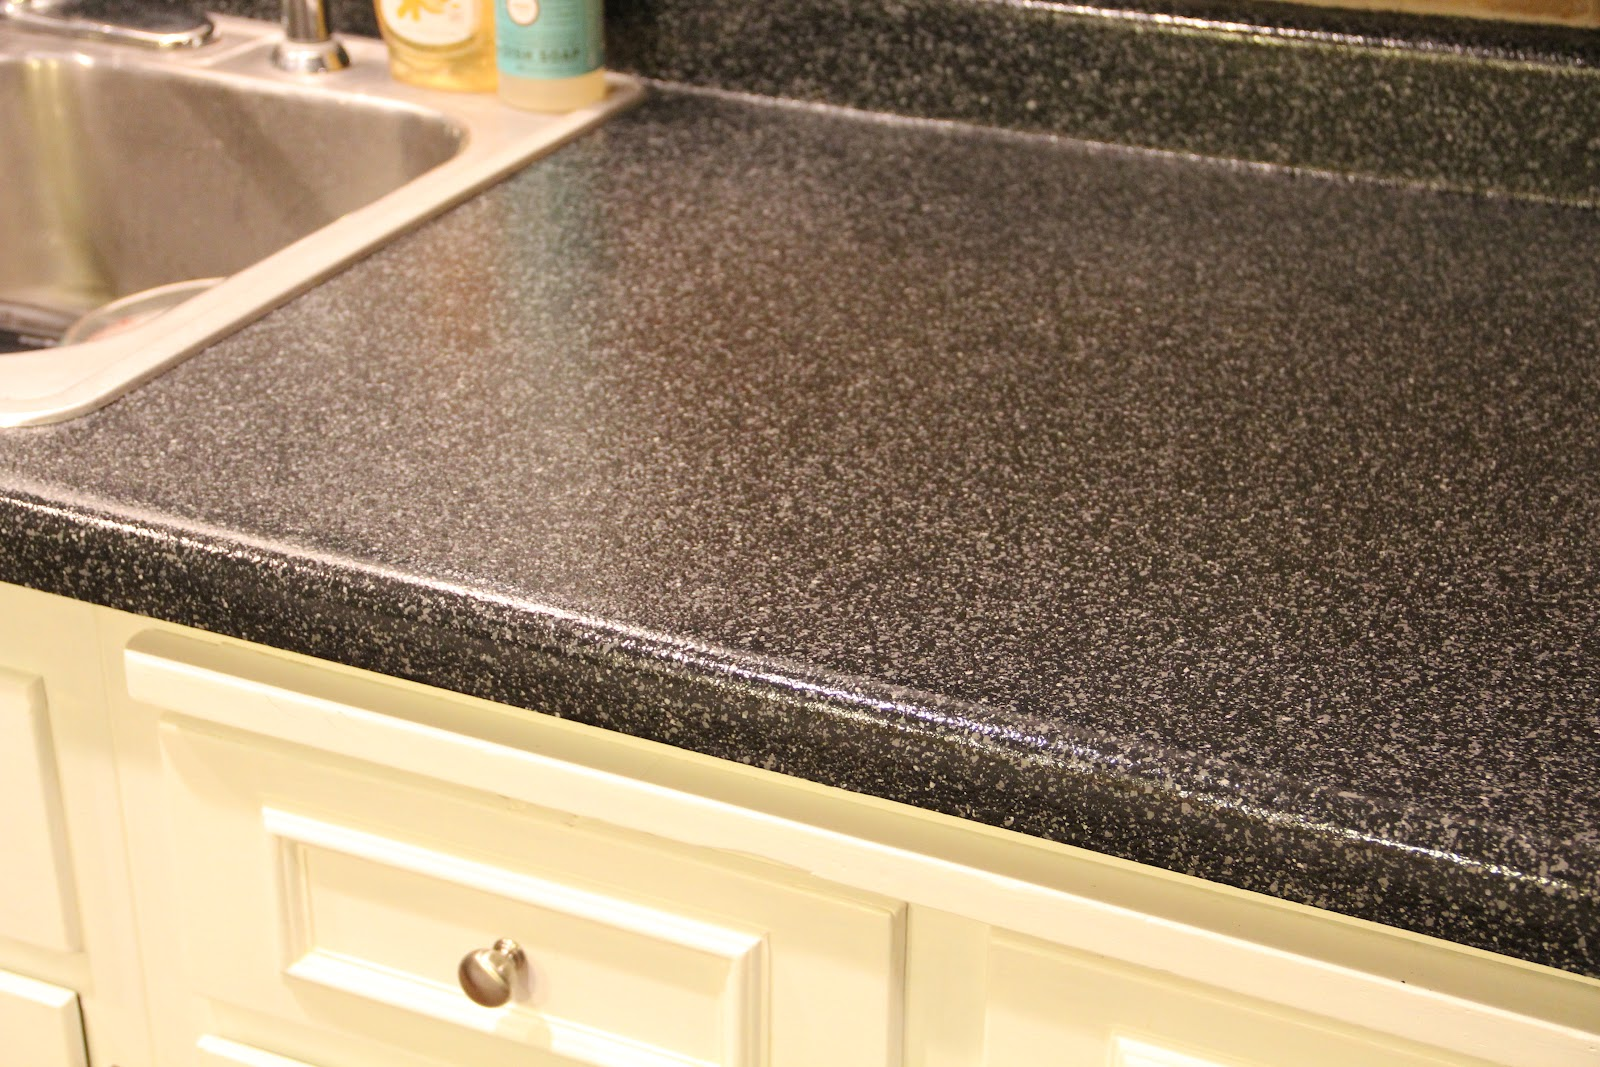 Rustoleum Countertop Paint Video : RustOleum Countertop Transformations Charcoal